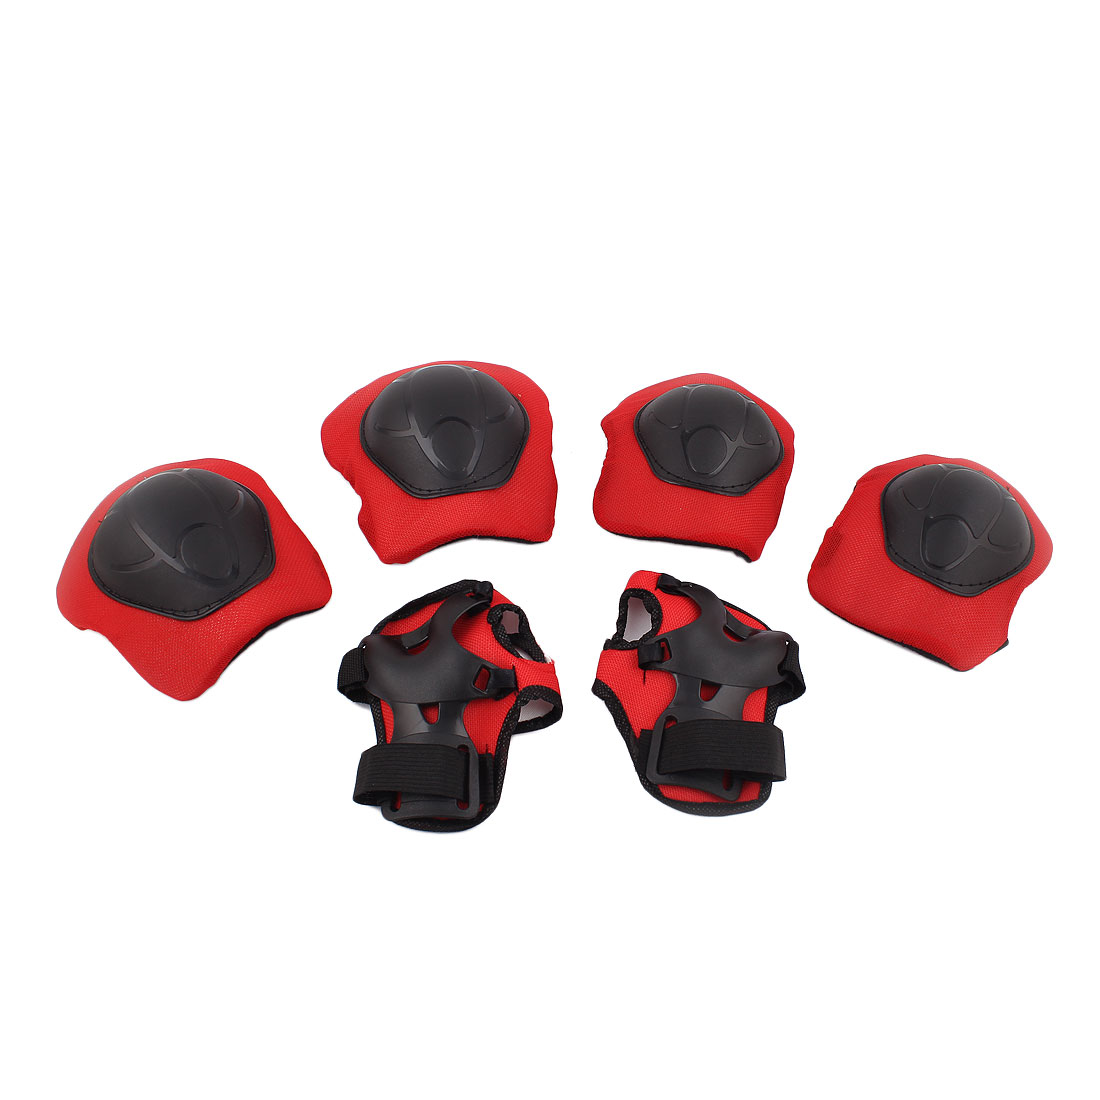 Unique Bargains 6 in 1 Set Skating Red Black Palm Wrist Guard Elbow Knee Pad Protector